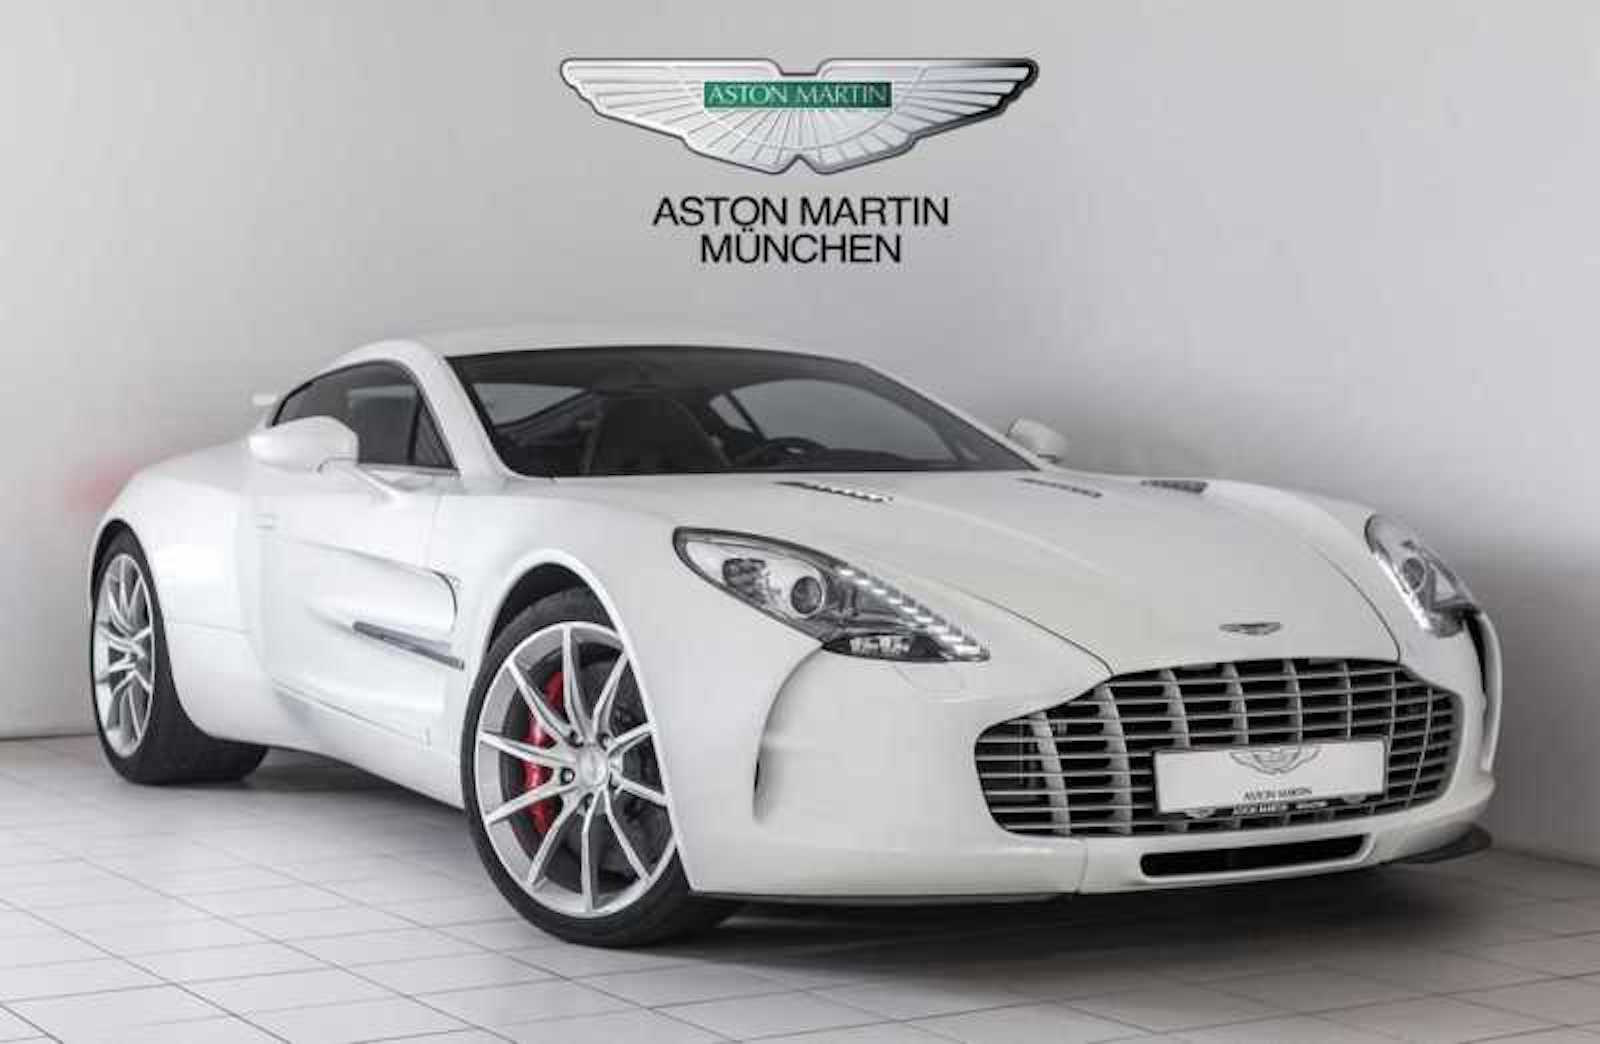 aston martin one 77 for sale. aston martin one 77 for sale motorauthority